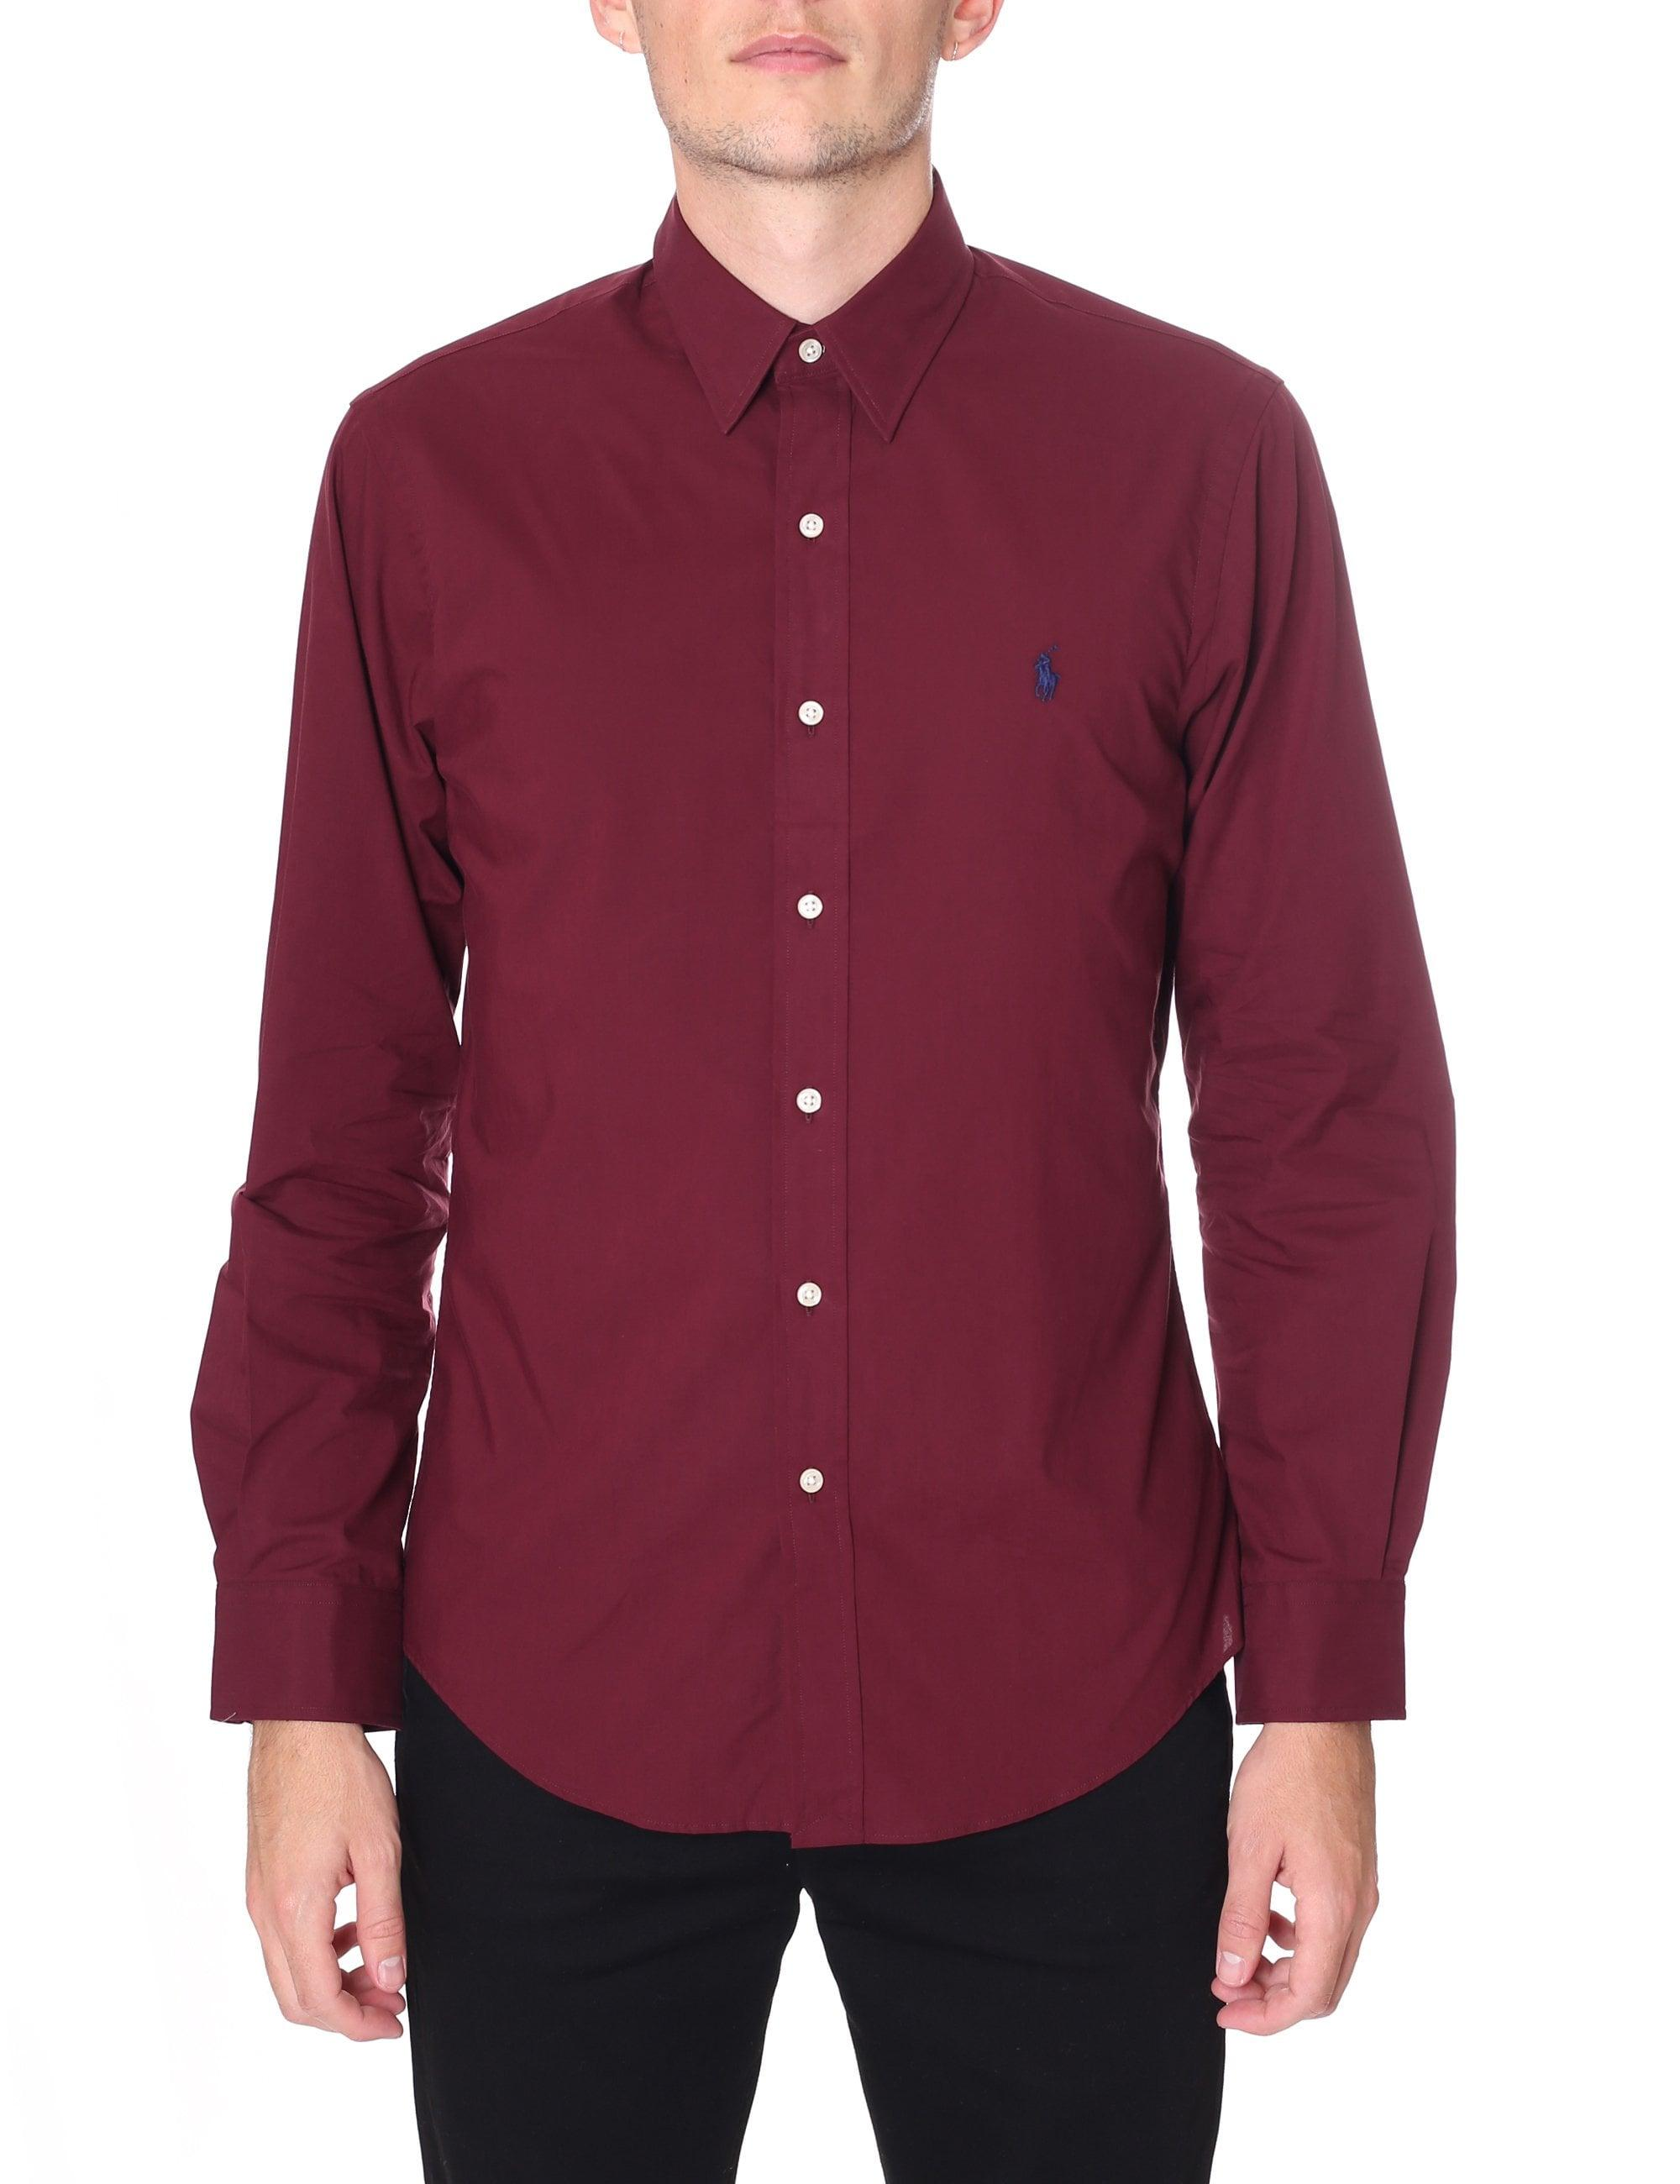 47f971a86 Polo Ralph Lauren Men s Slim Fit Long Sleeve Shirt Vintage Burgundy ...